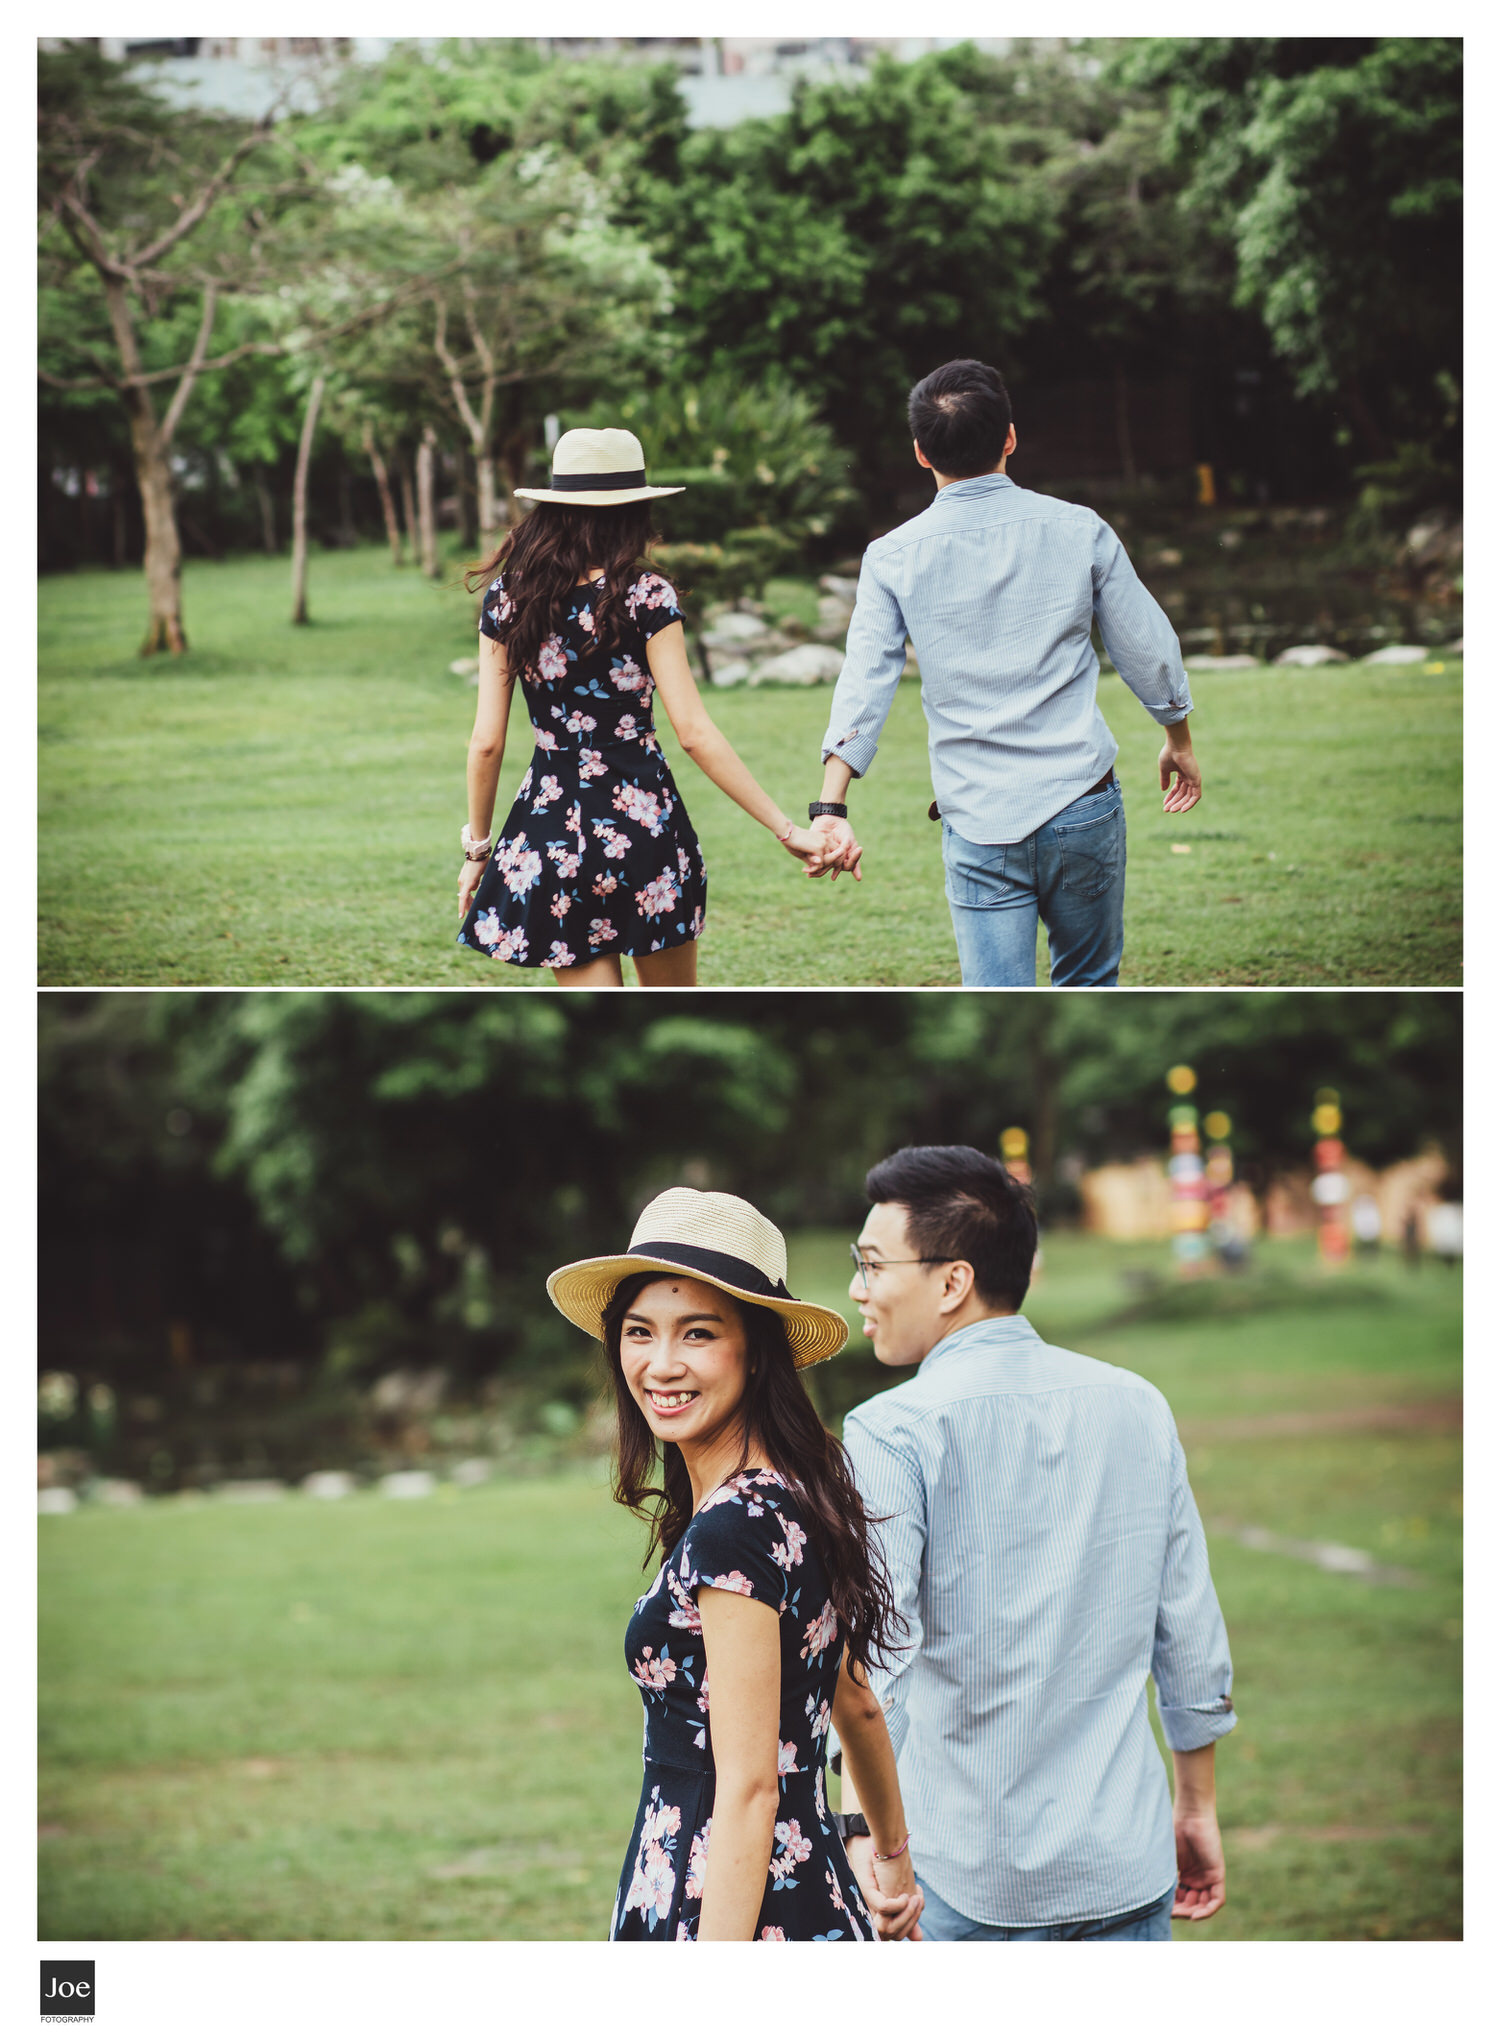 joe-fotography-engagement-photo-adrian-hilpy-51.jpg